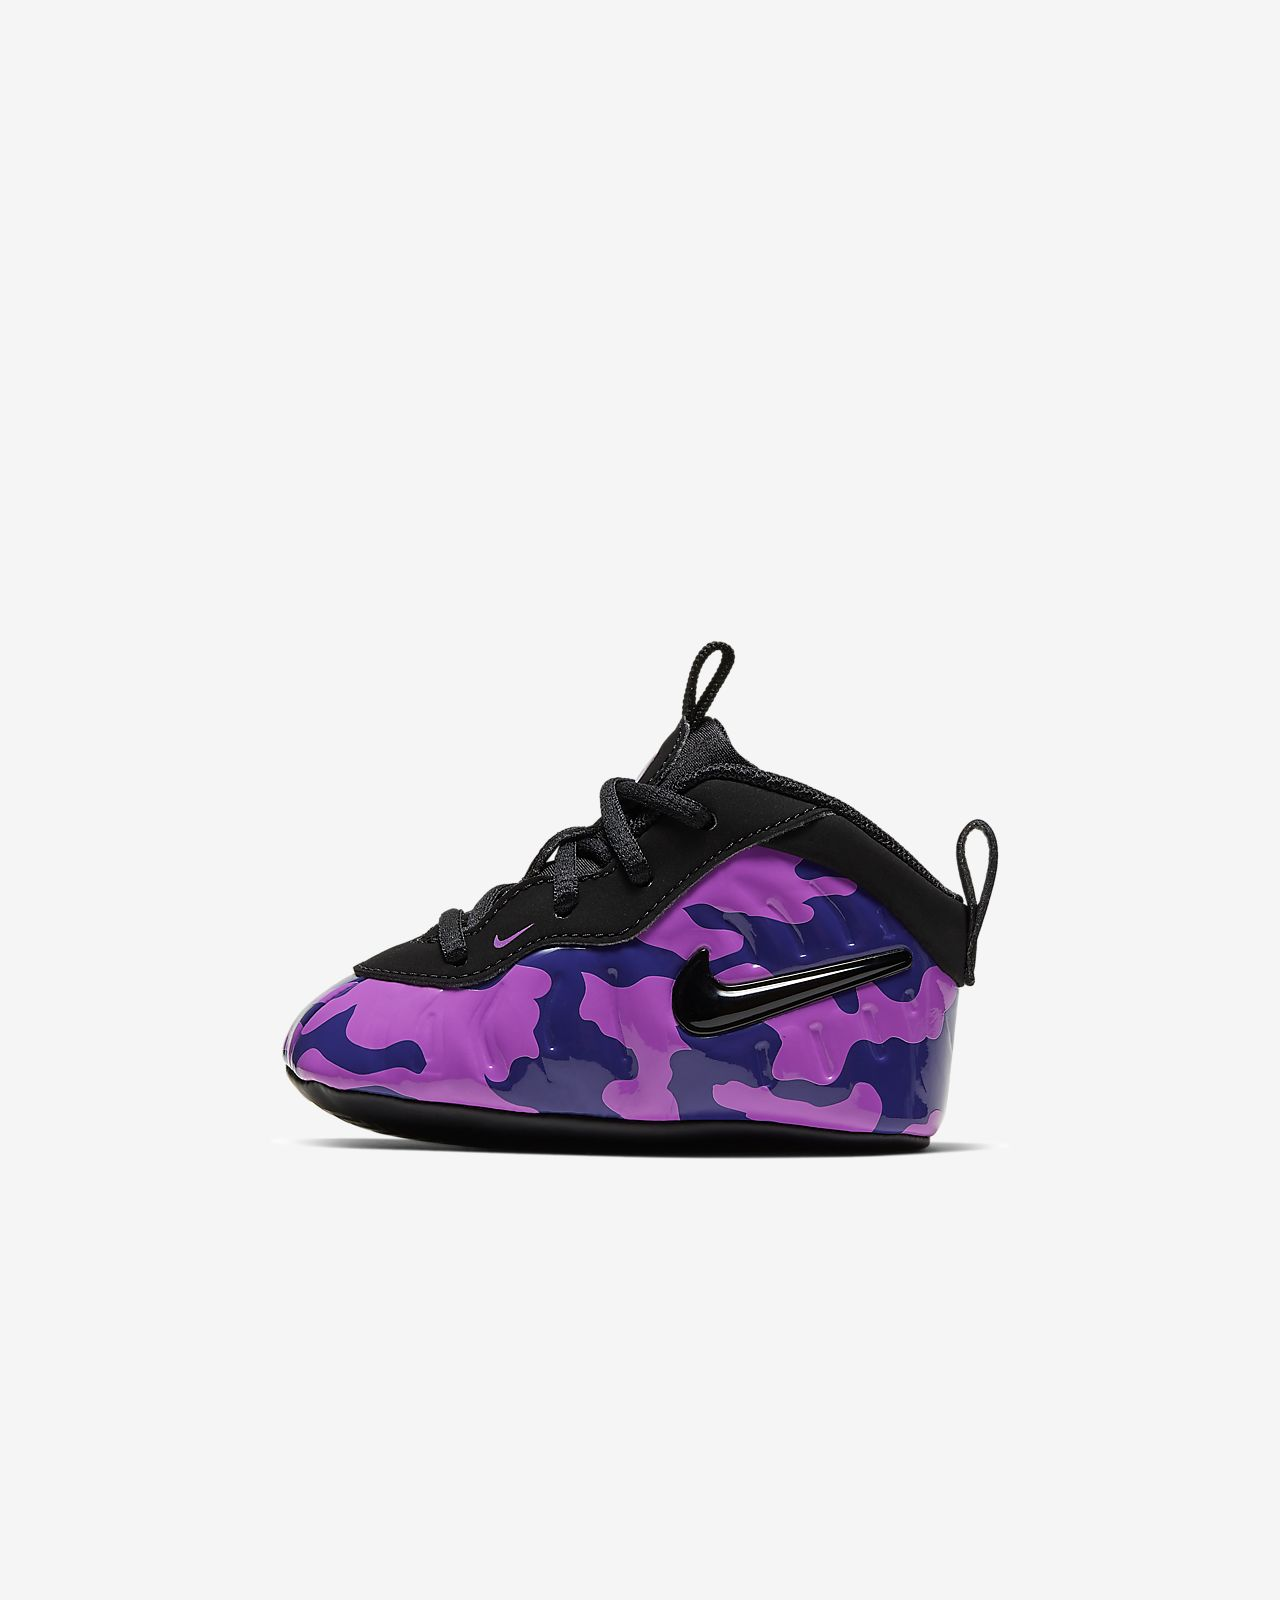 11a698e59 Nike Lil' Posite Pro Infant/Toddler Bootie